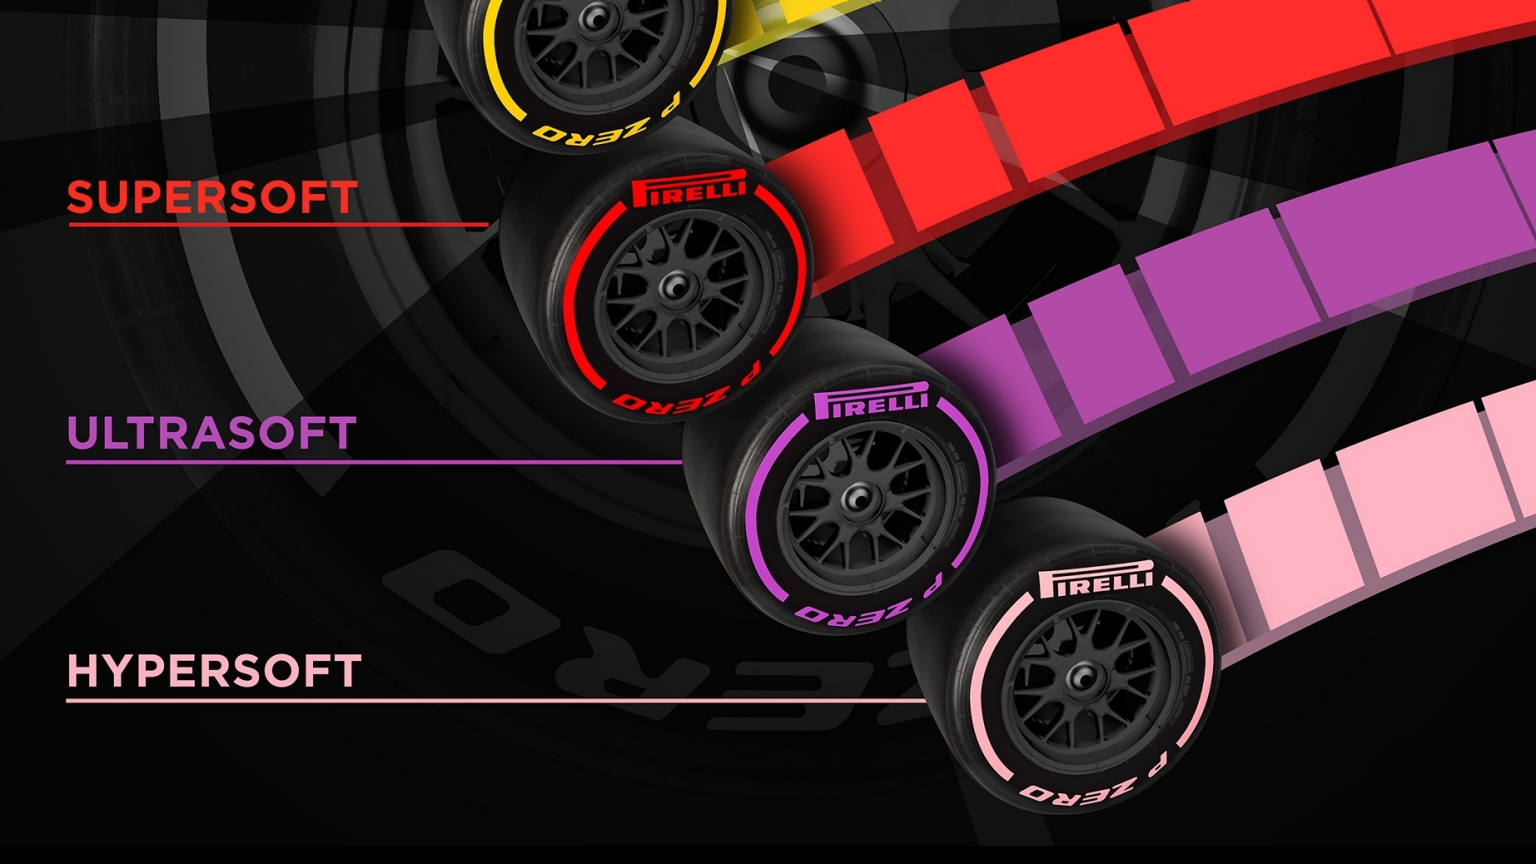 https://www.formula1.com/content/fom-website/en/latest/headlines/2017/11/pink-hypersoft-and-orange-superhard-join-pirellis-2018-tyre-line/_jcr_content/image16x9.img.1536.high.jpg